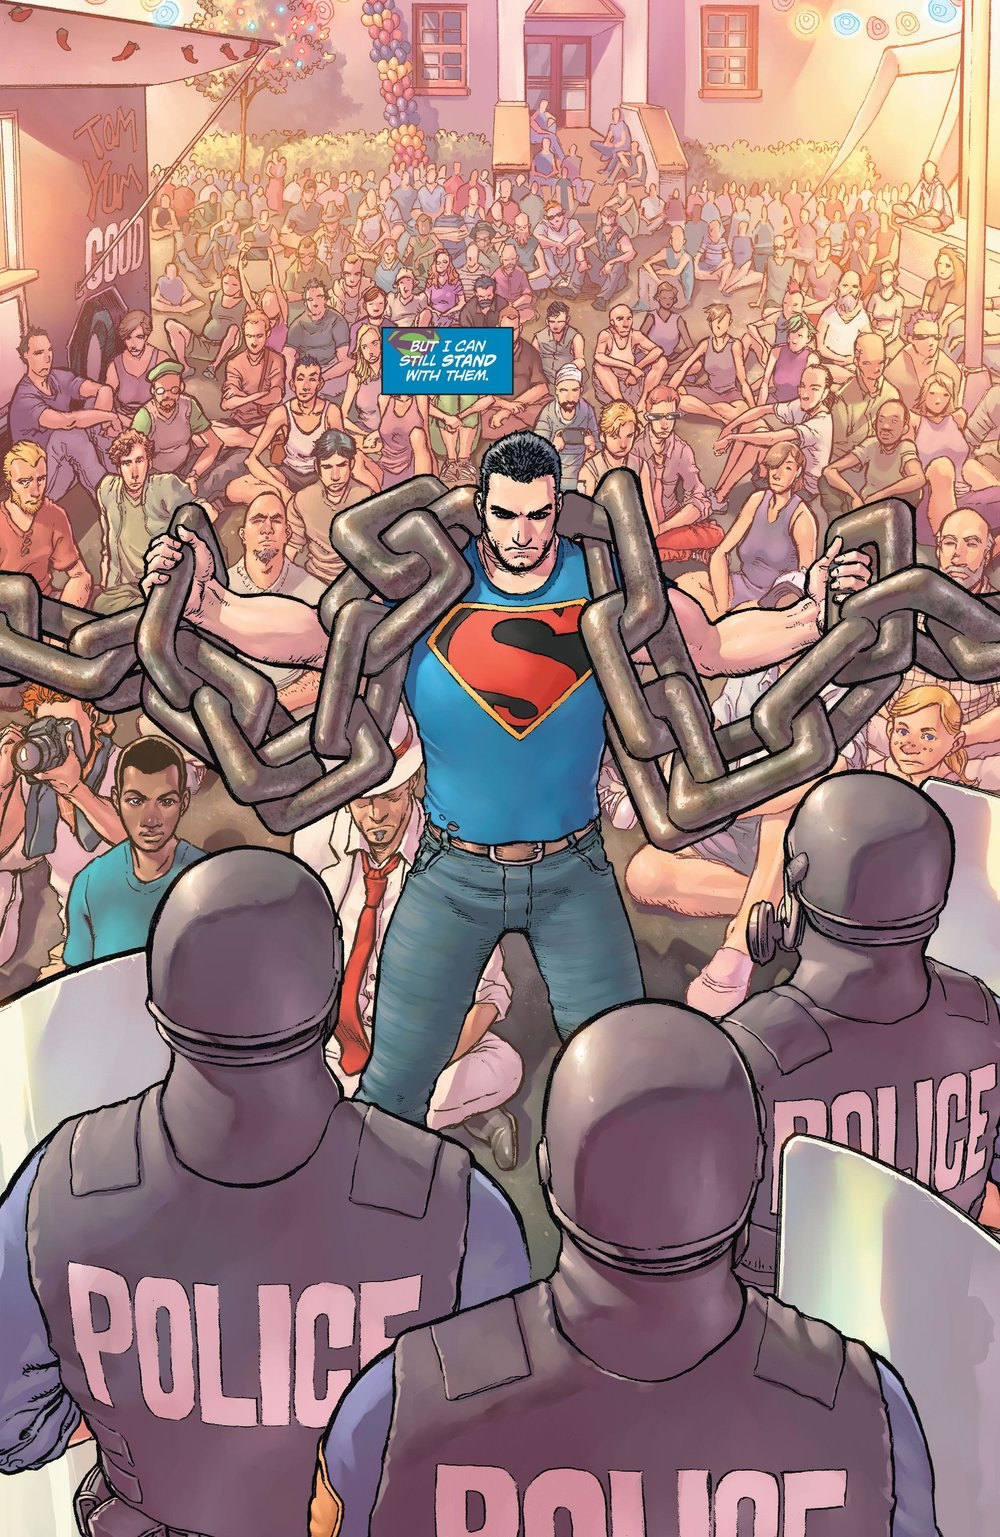 Action Comics #42 by Greg Pak and Aaron Kuder (2015)